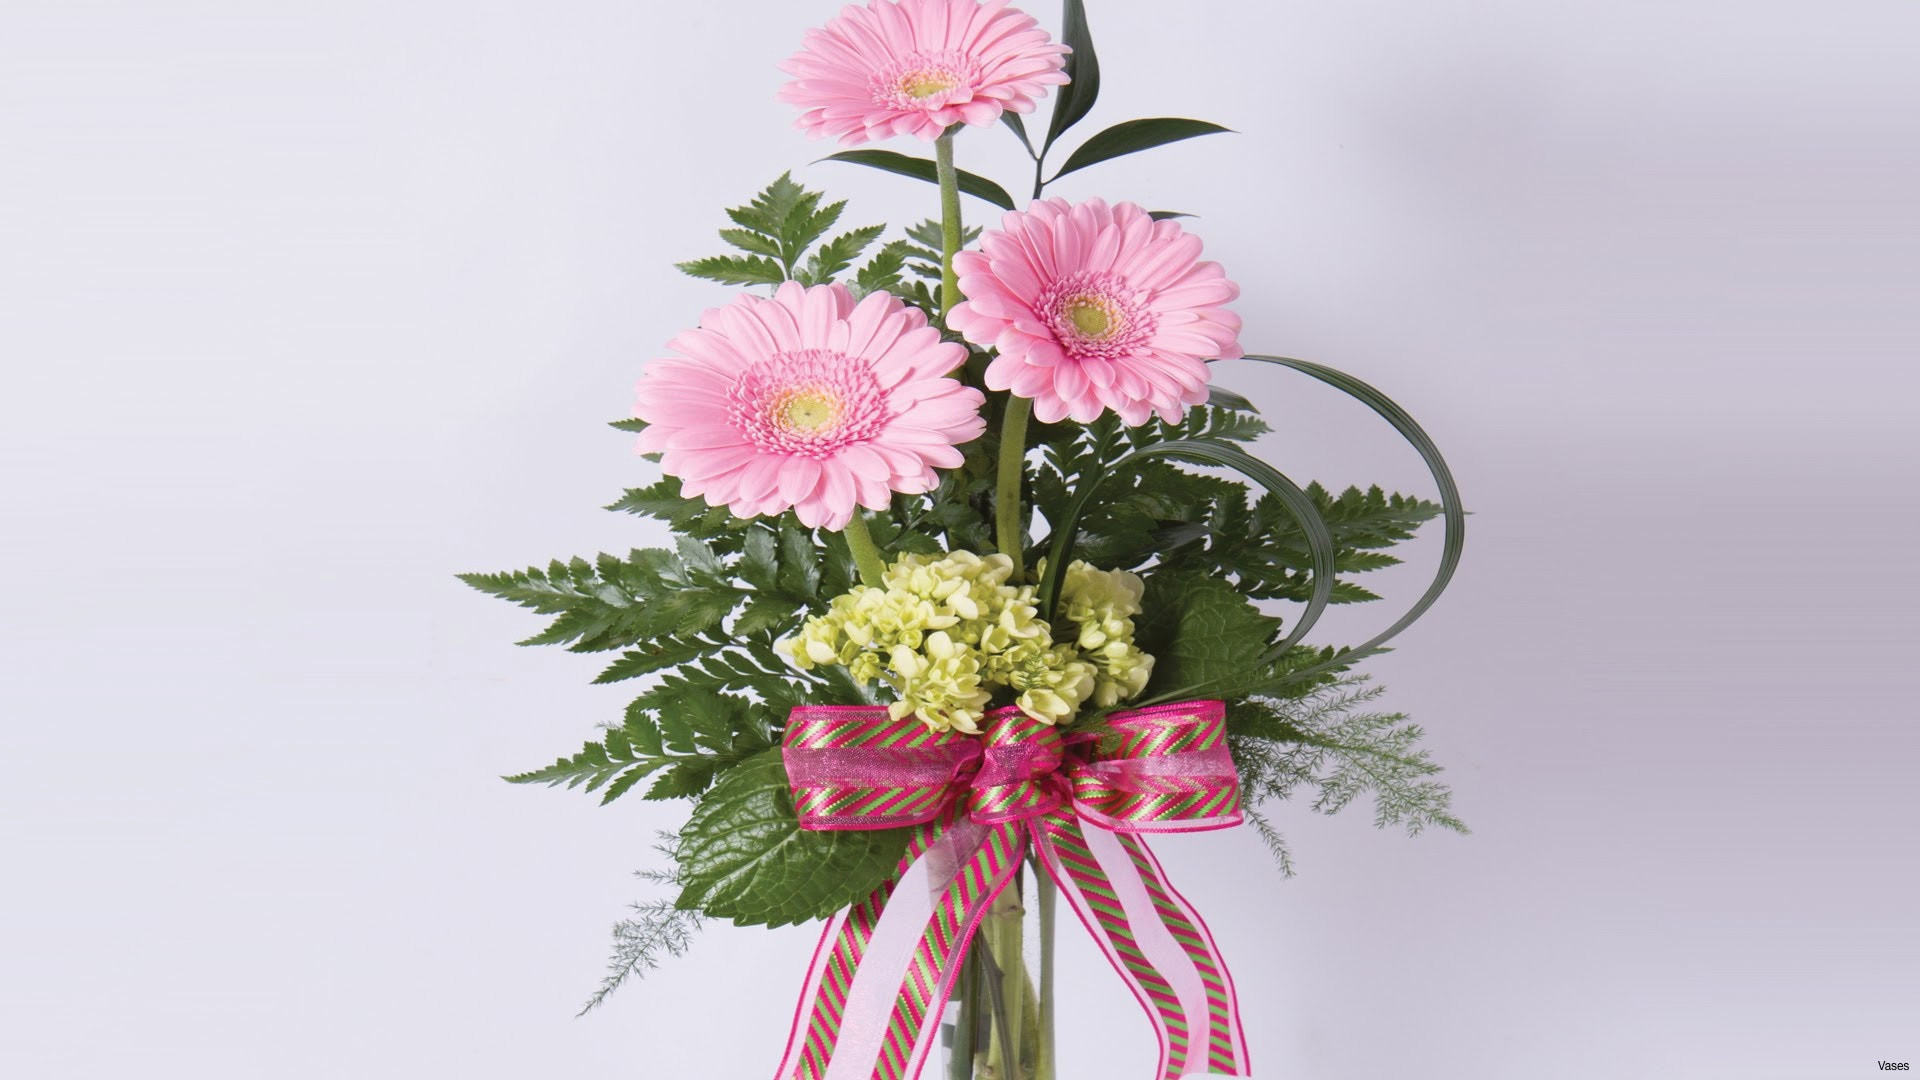 H Vases Bud Vase Flower Arrangements I 0d for Inspiration Design